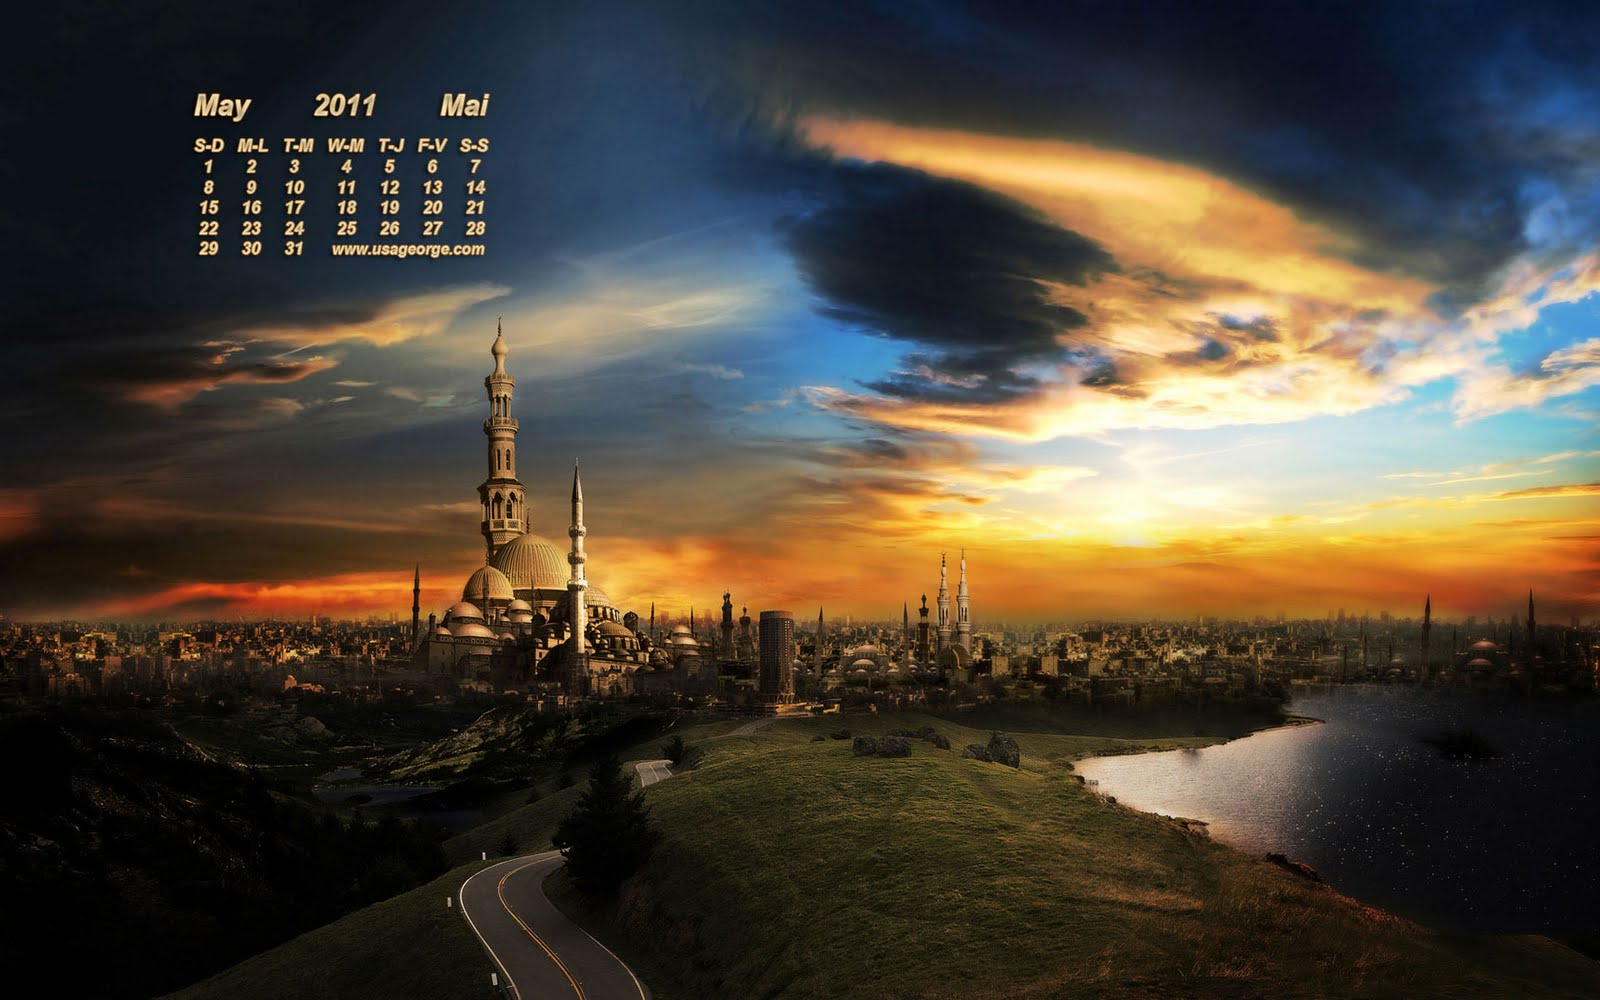 Impress Moment MaY 2011 DeSKToP CaLeNDaR WaLLPaPeRS 1600x1000